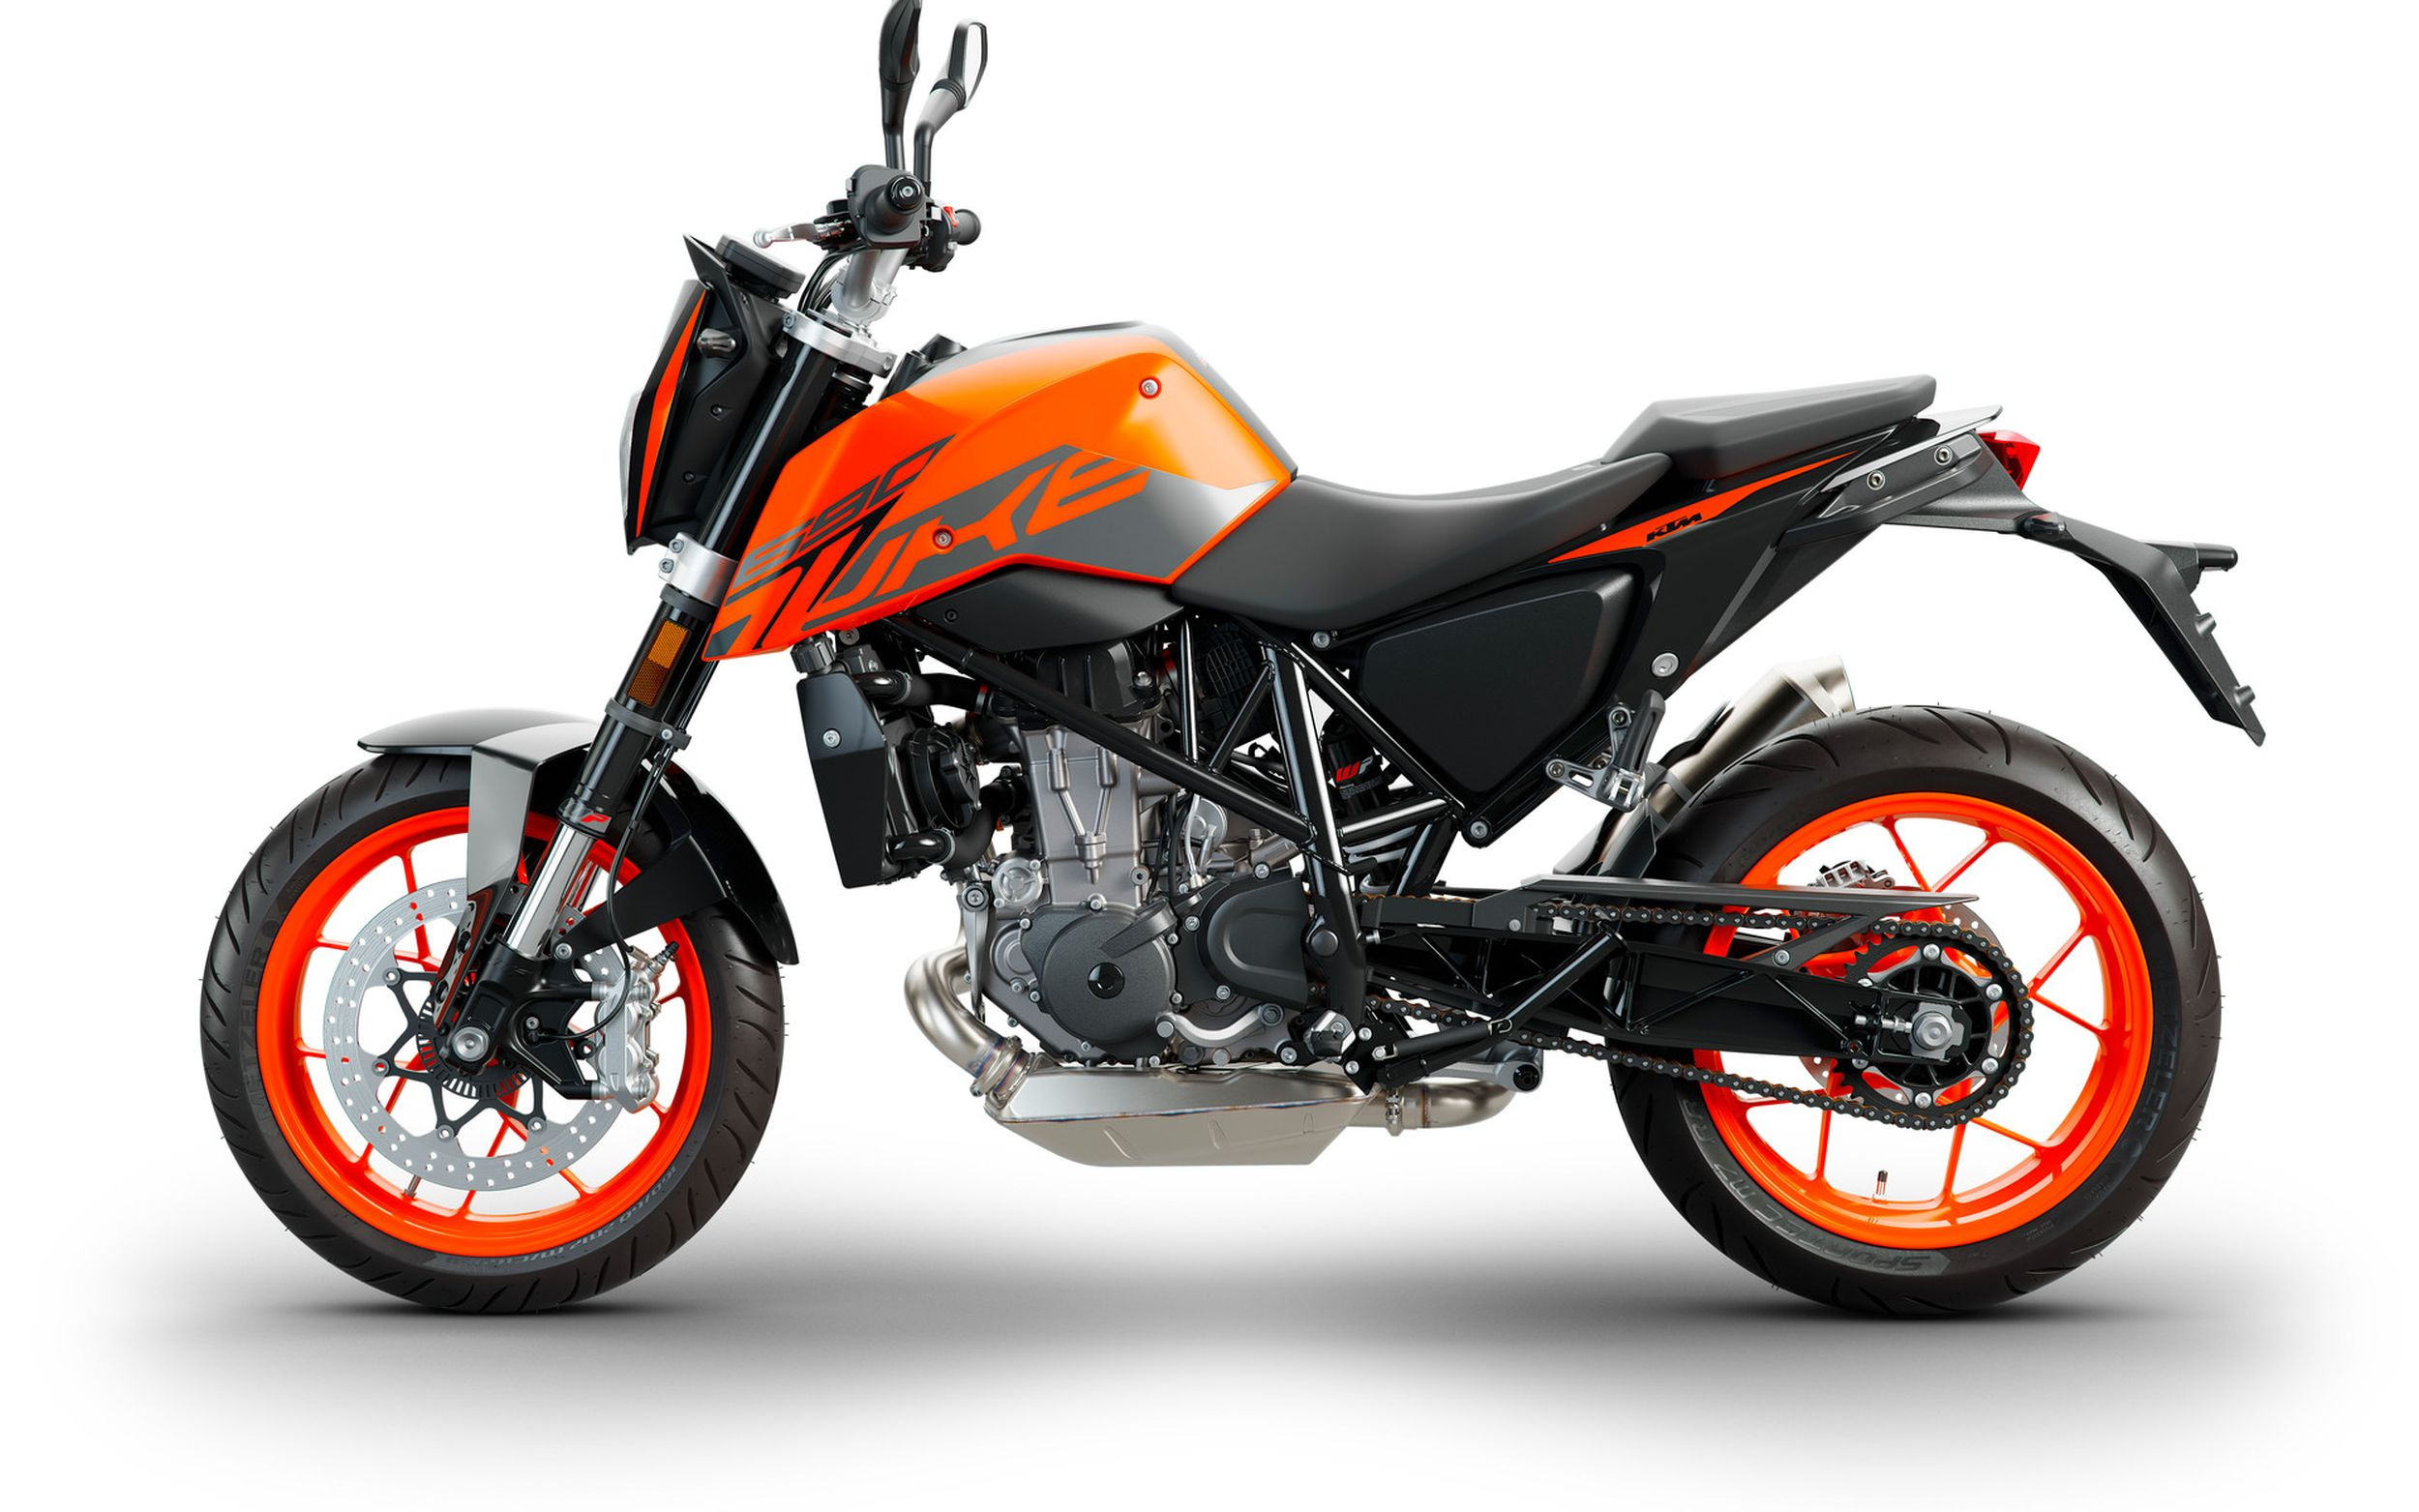 ktm 690 duke test t ff 39 s bilder technische daten. Black Bedroom Furniture Sets. Home Design Ideas